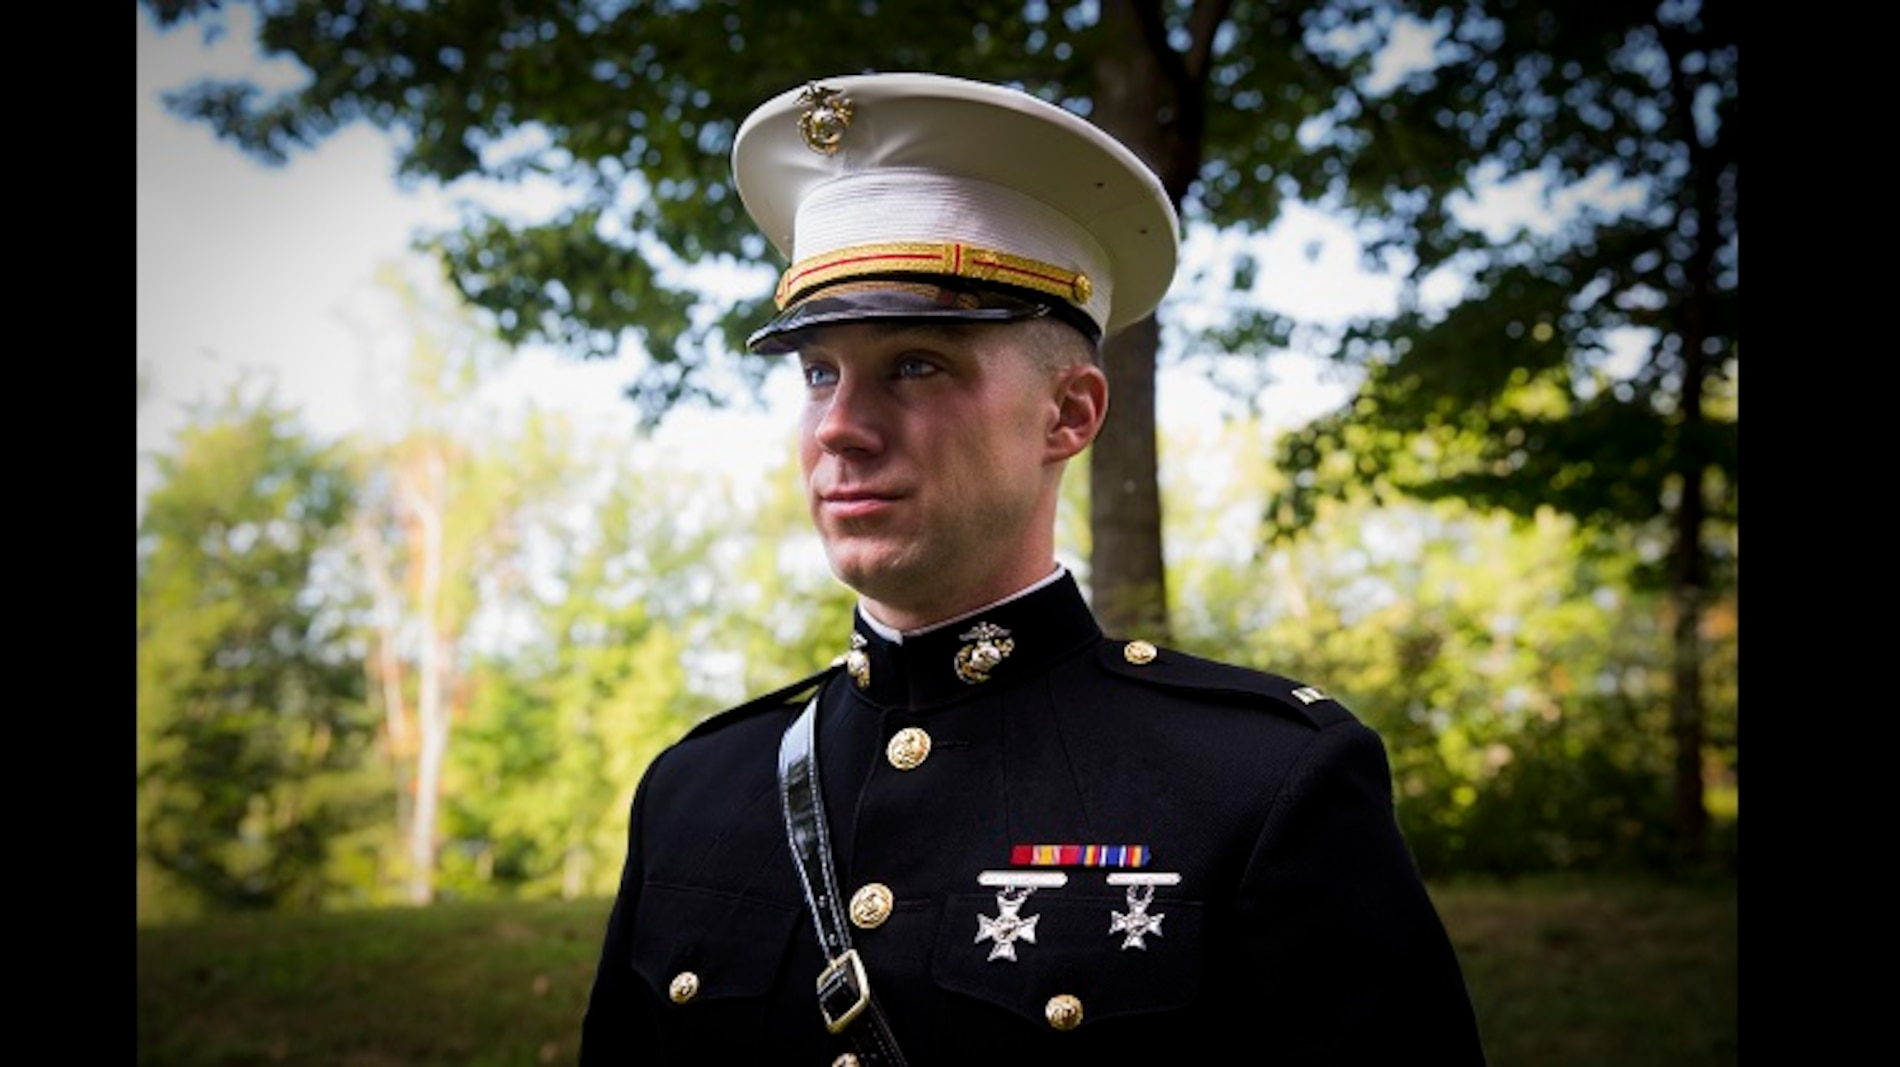 Second Lieutenant Michael McHale poses for a photo at Marine Corps Base Quantico, Virginia, August 23, 2019. McHale enlisted in the Marine Corps in 2015 before being accepted to the Enlisted Commissioning Program (ECP). The program is designed to provide the opportunity for Marines who have...